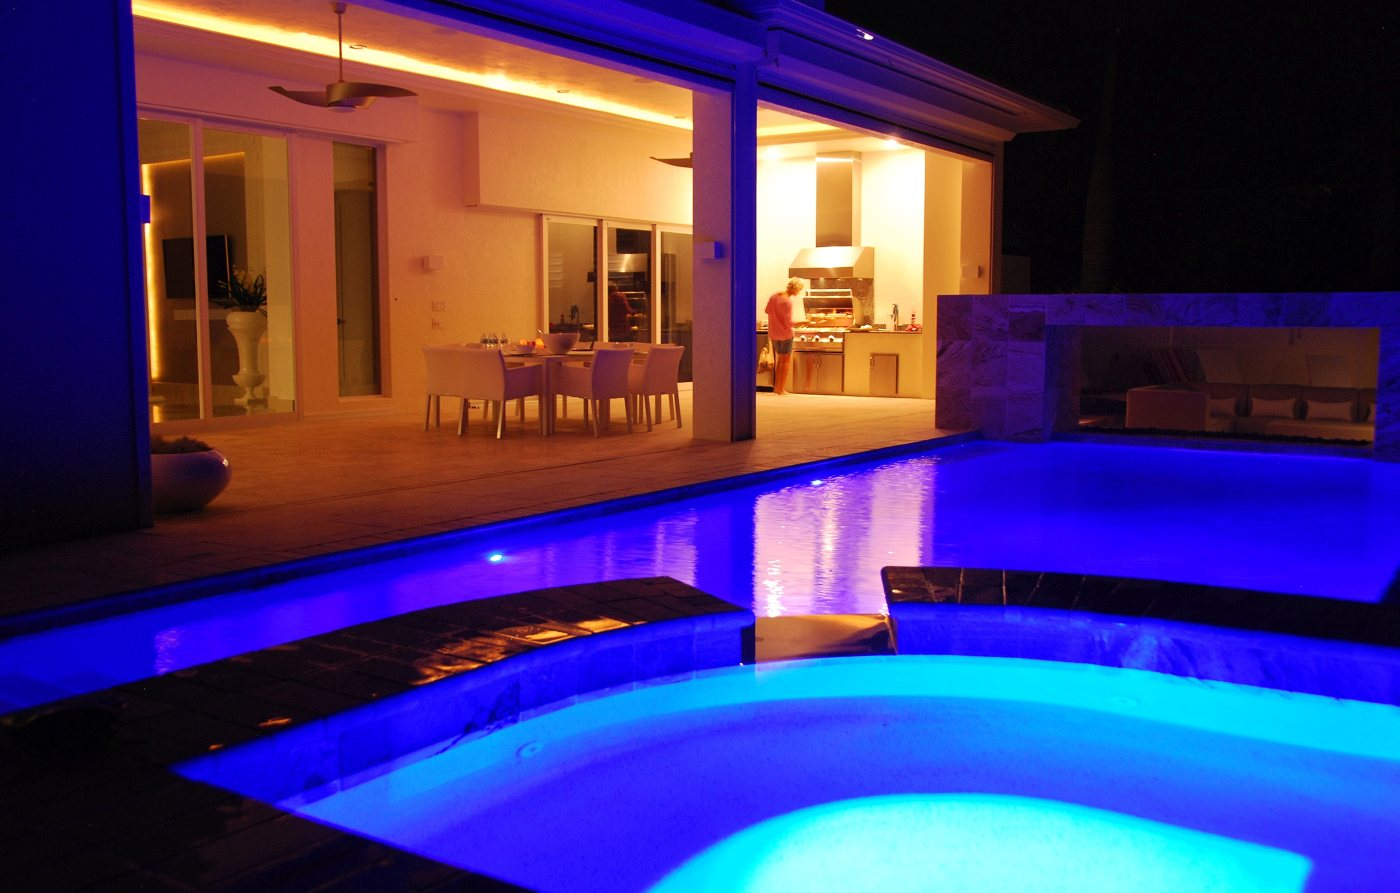 Pool in the rental home